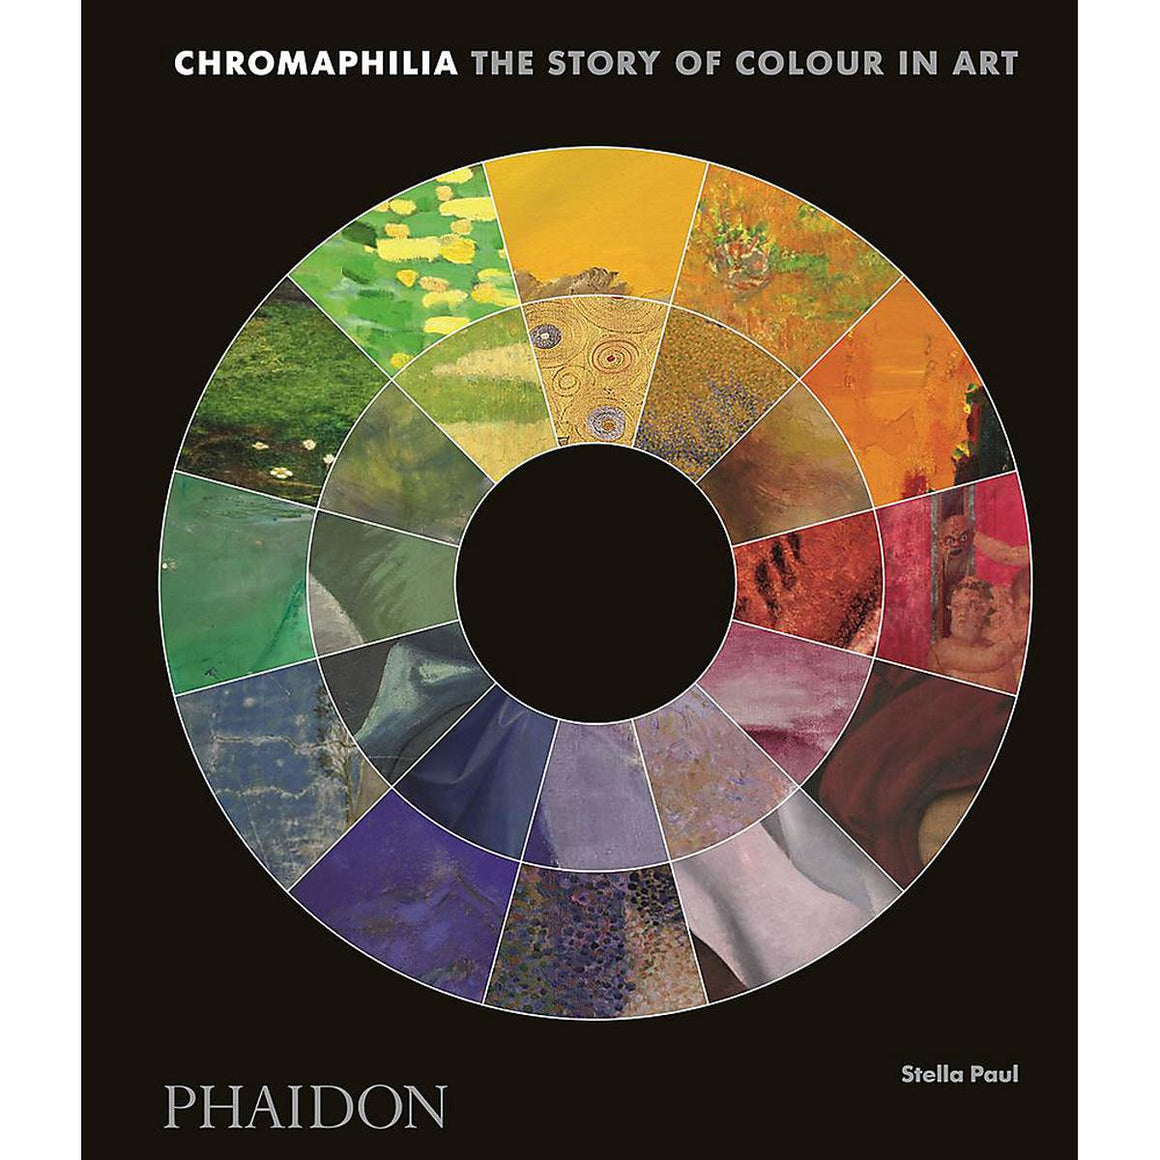 A black book cover featuring a traditional colour wheel. Each colour segment is made up of a detail of an artwork.